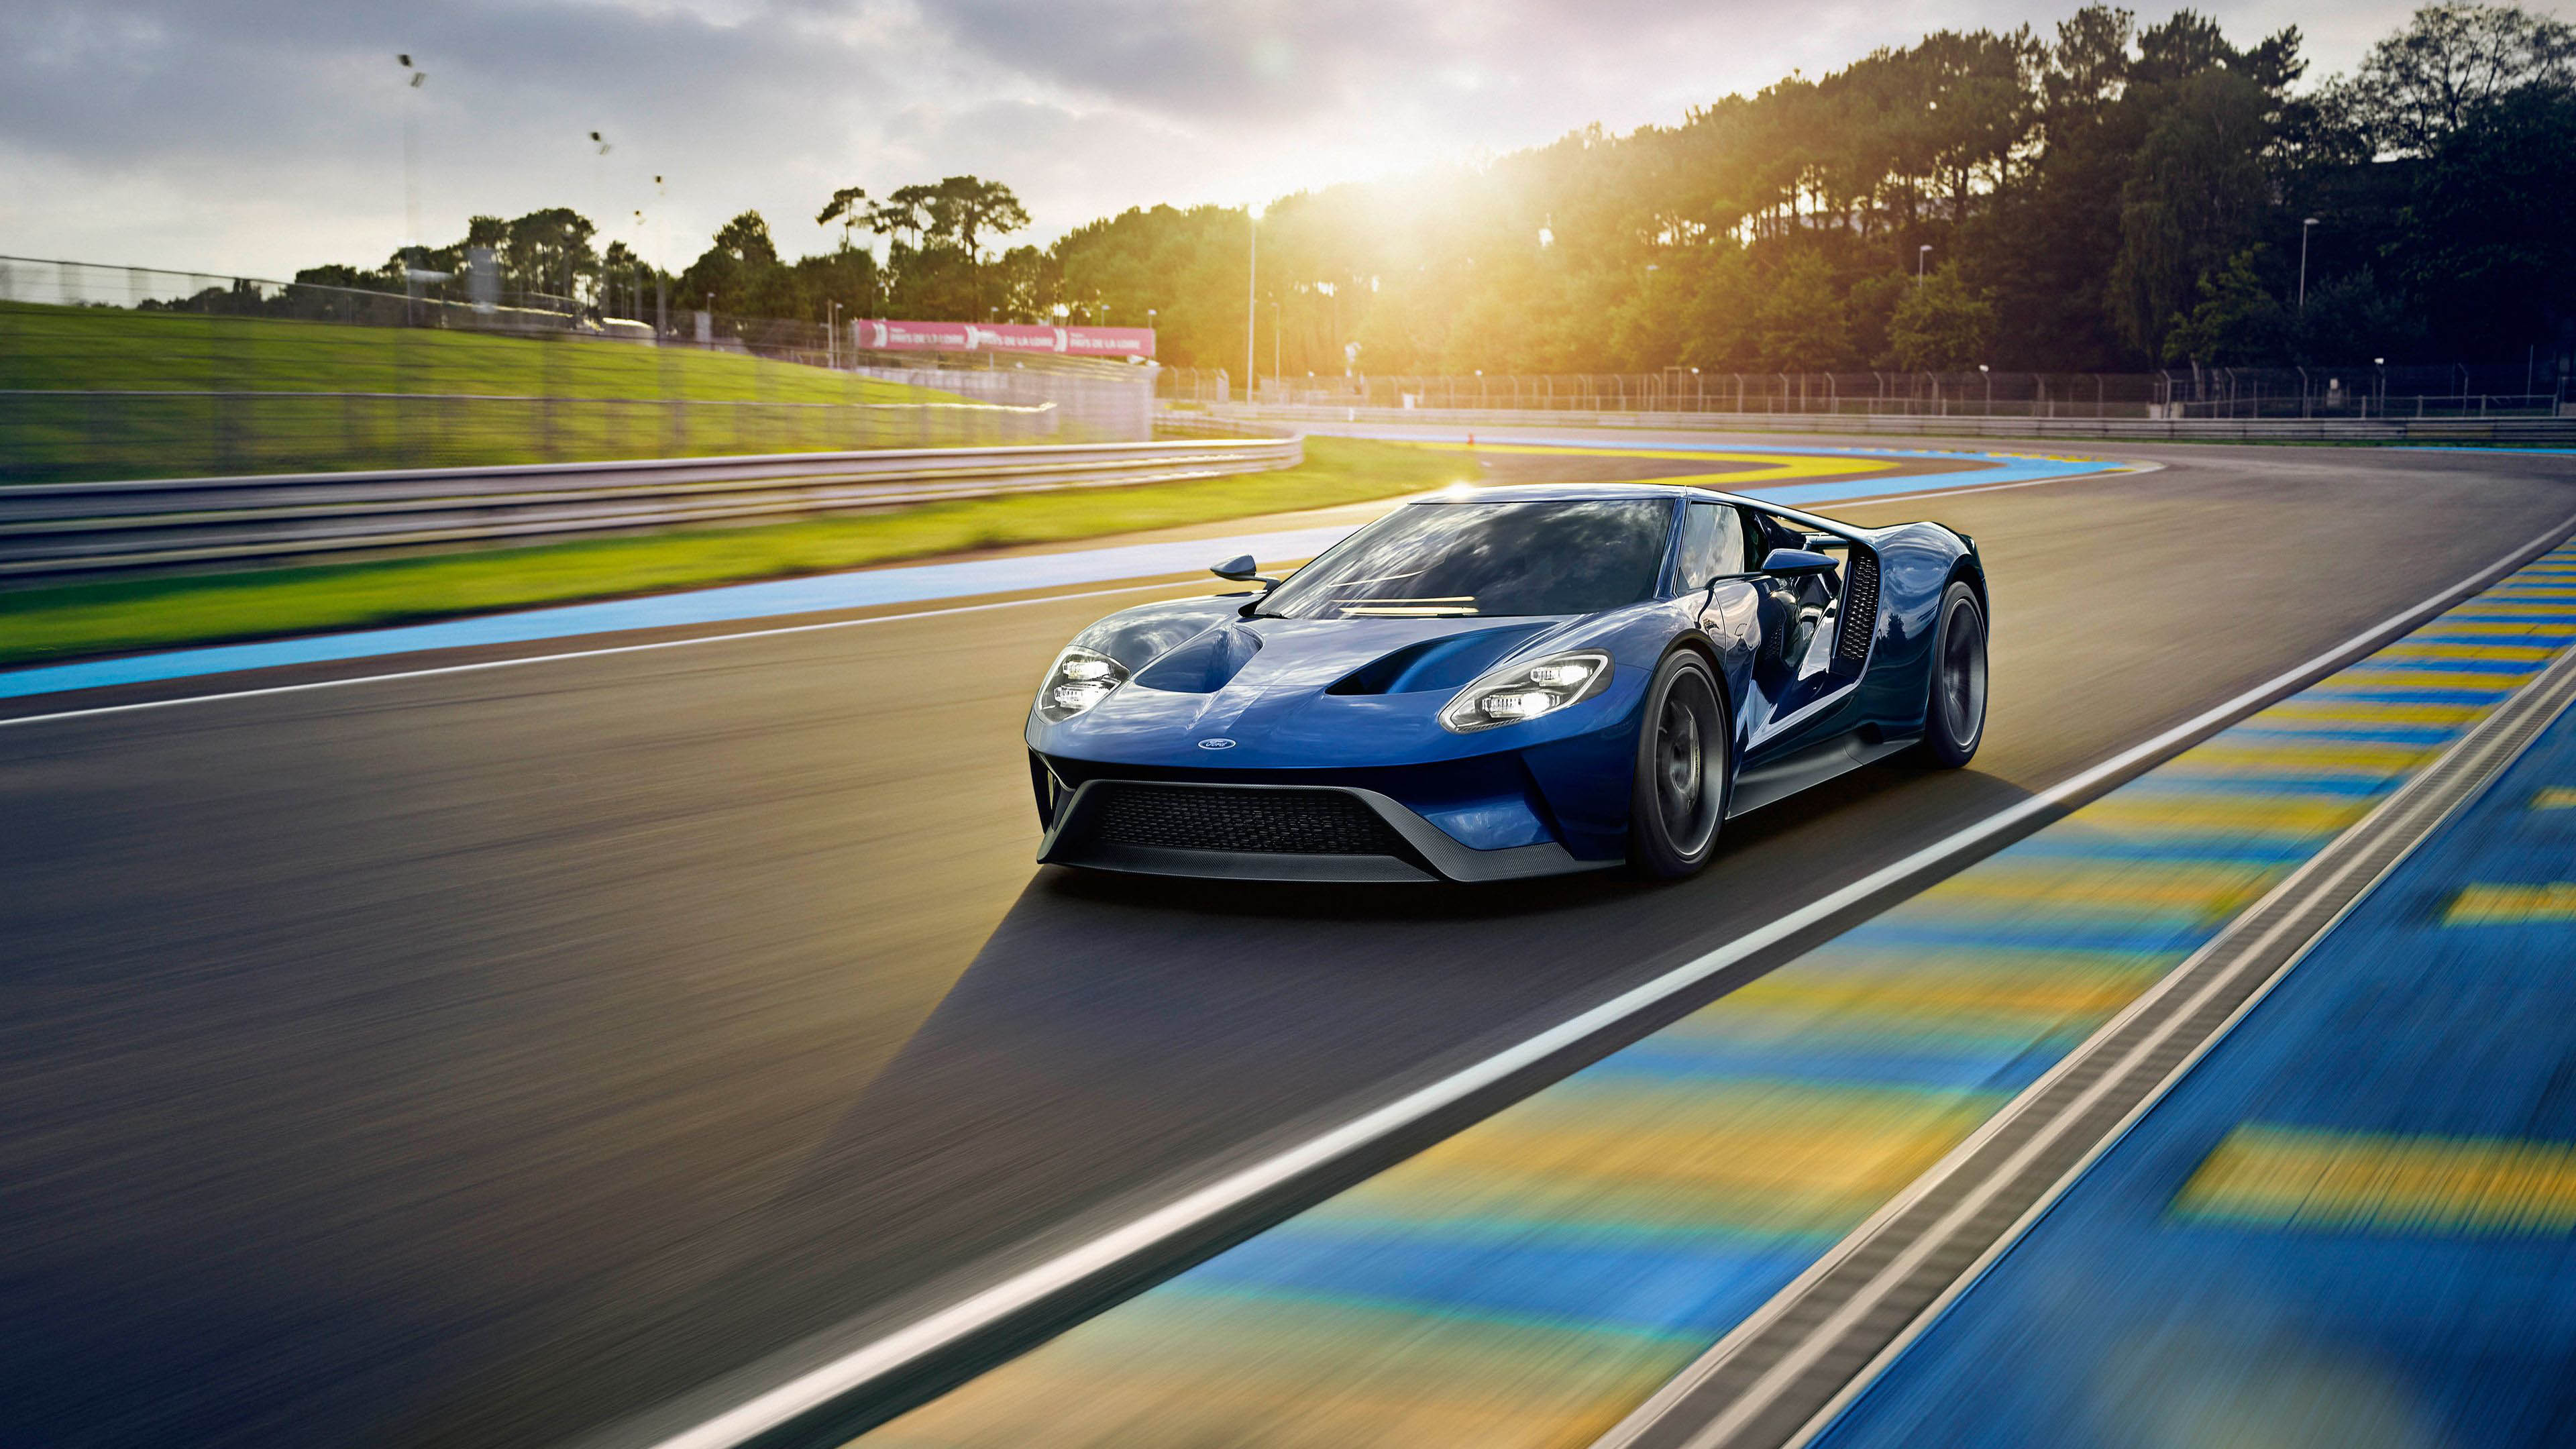 2017-Ford-GT-Car-4K-Resolution-HD-Picture-Cool-Wallpaper